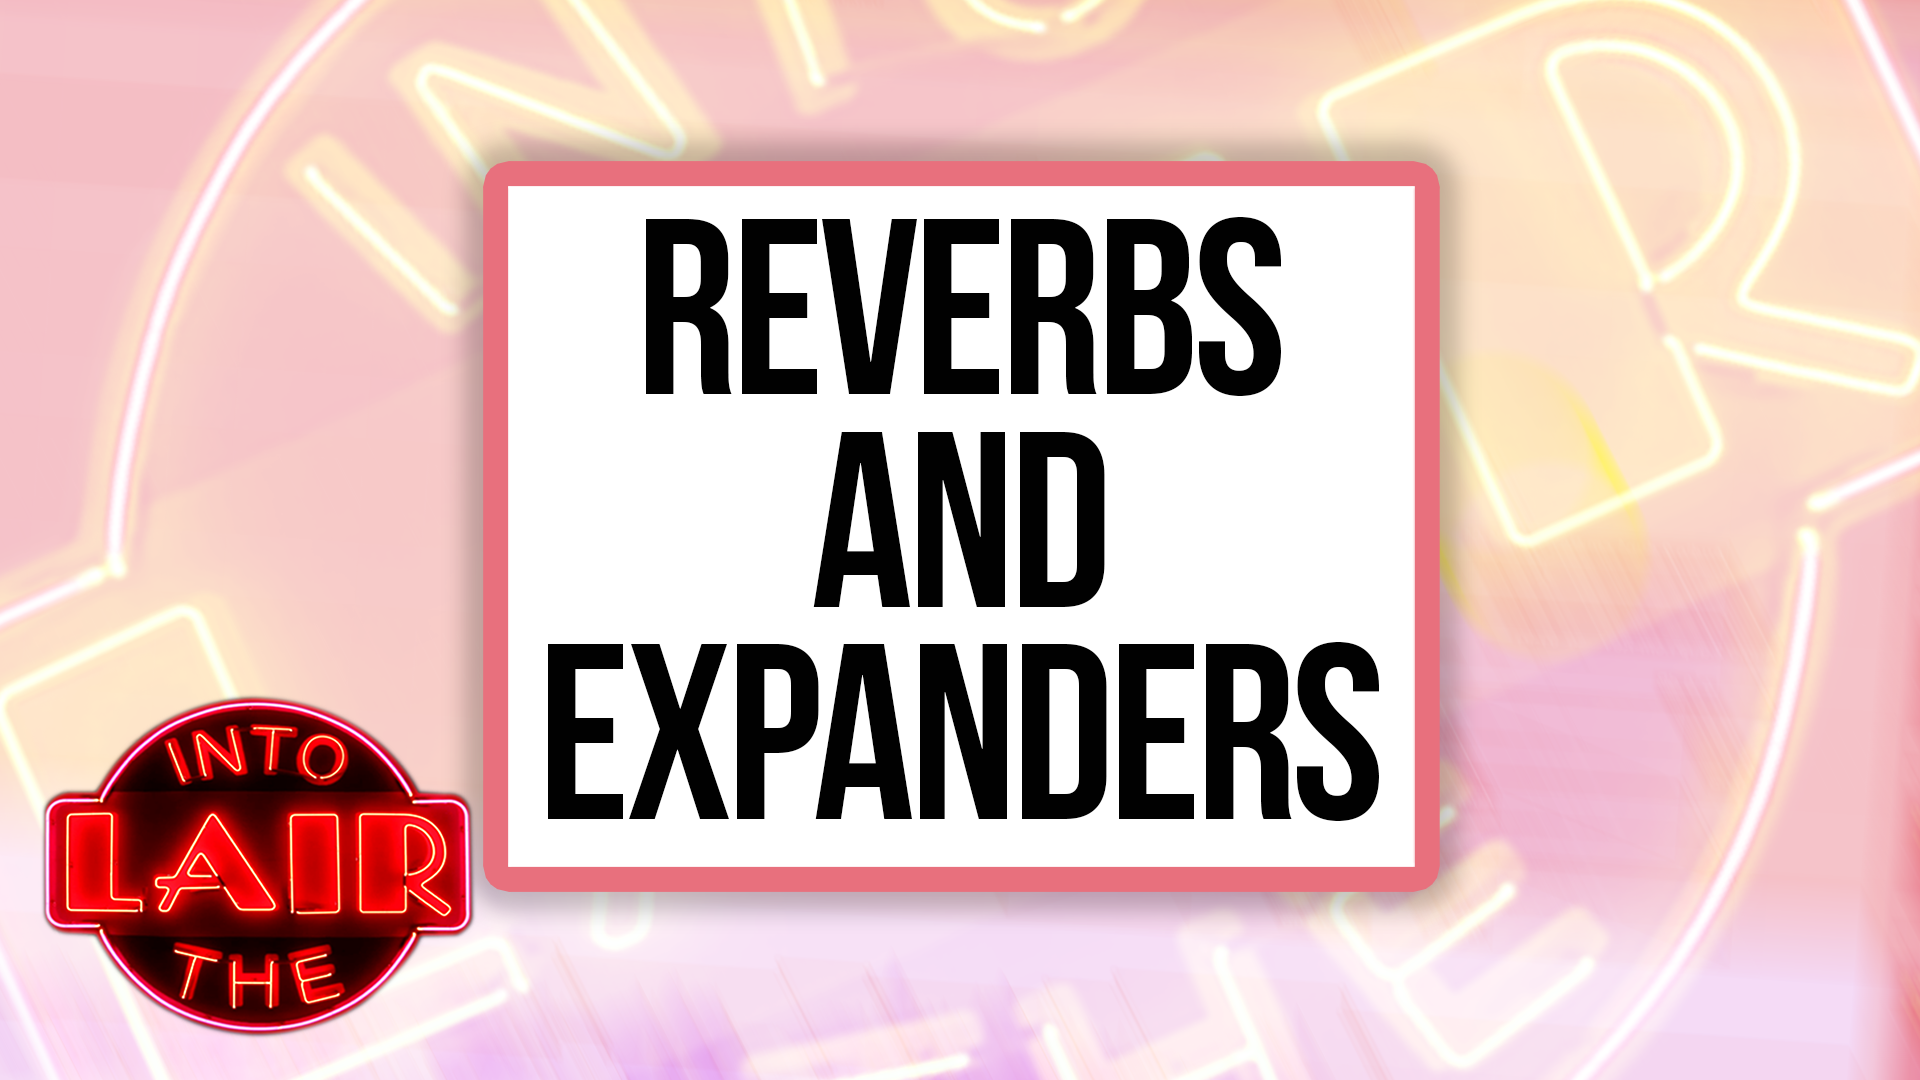 Reverbs and Expanders